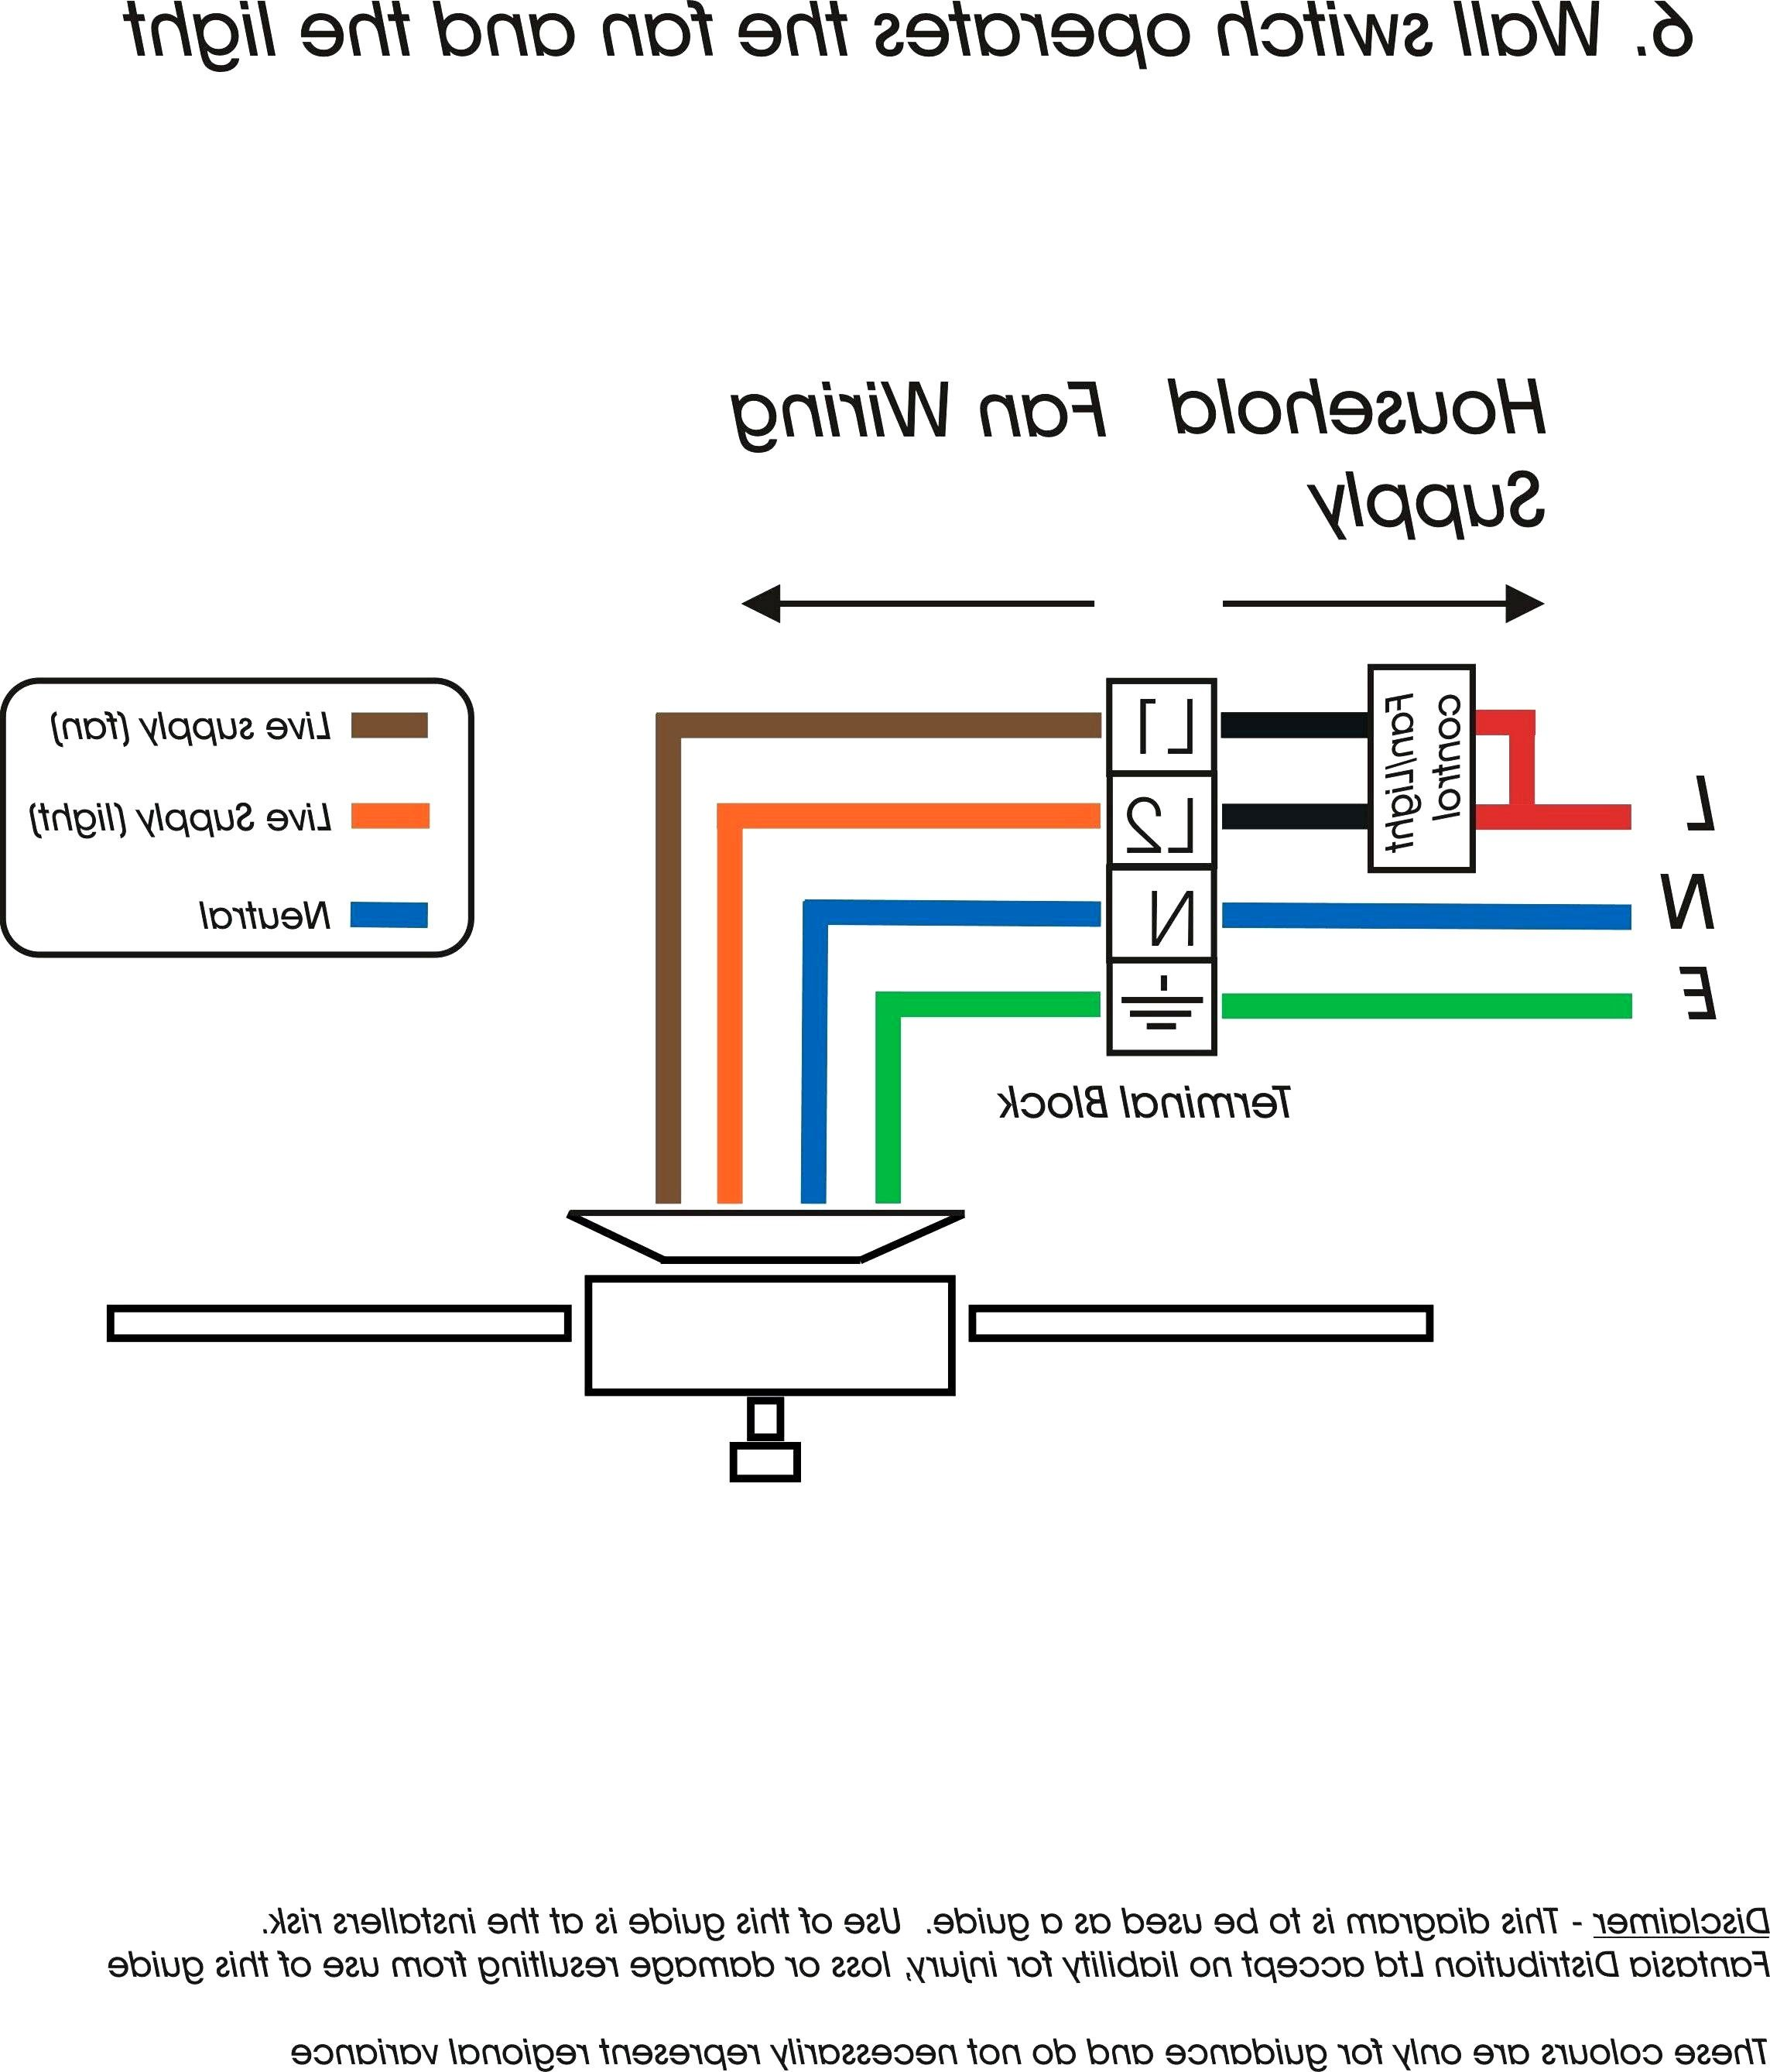 new home wiring diagrams #diagram #wiringdiagram #diagramming #diagramm  #visuals #visualisation #grap… (with images) | ceiling fan switch, light  switch wiring, ceiling fan wiring  pinterest